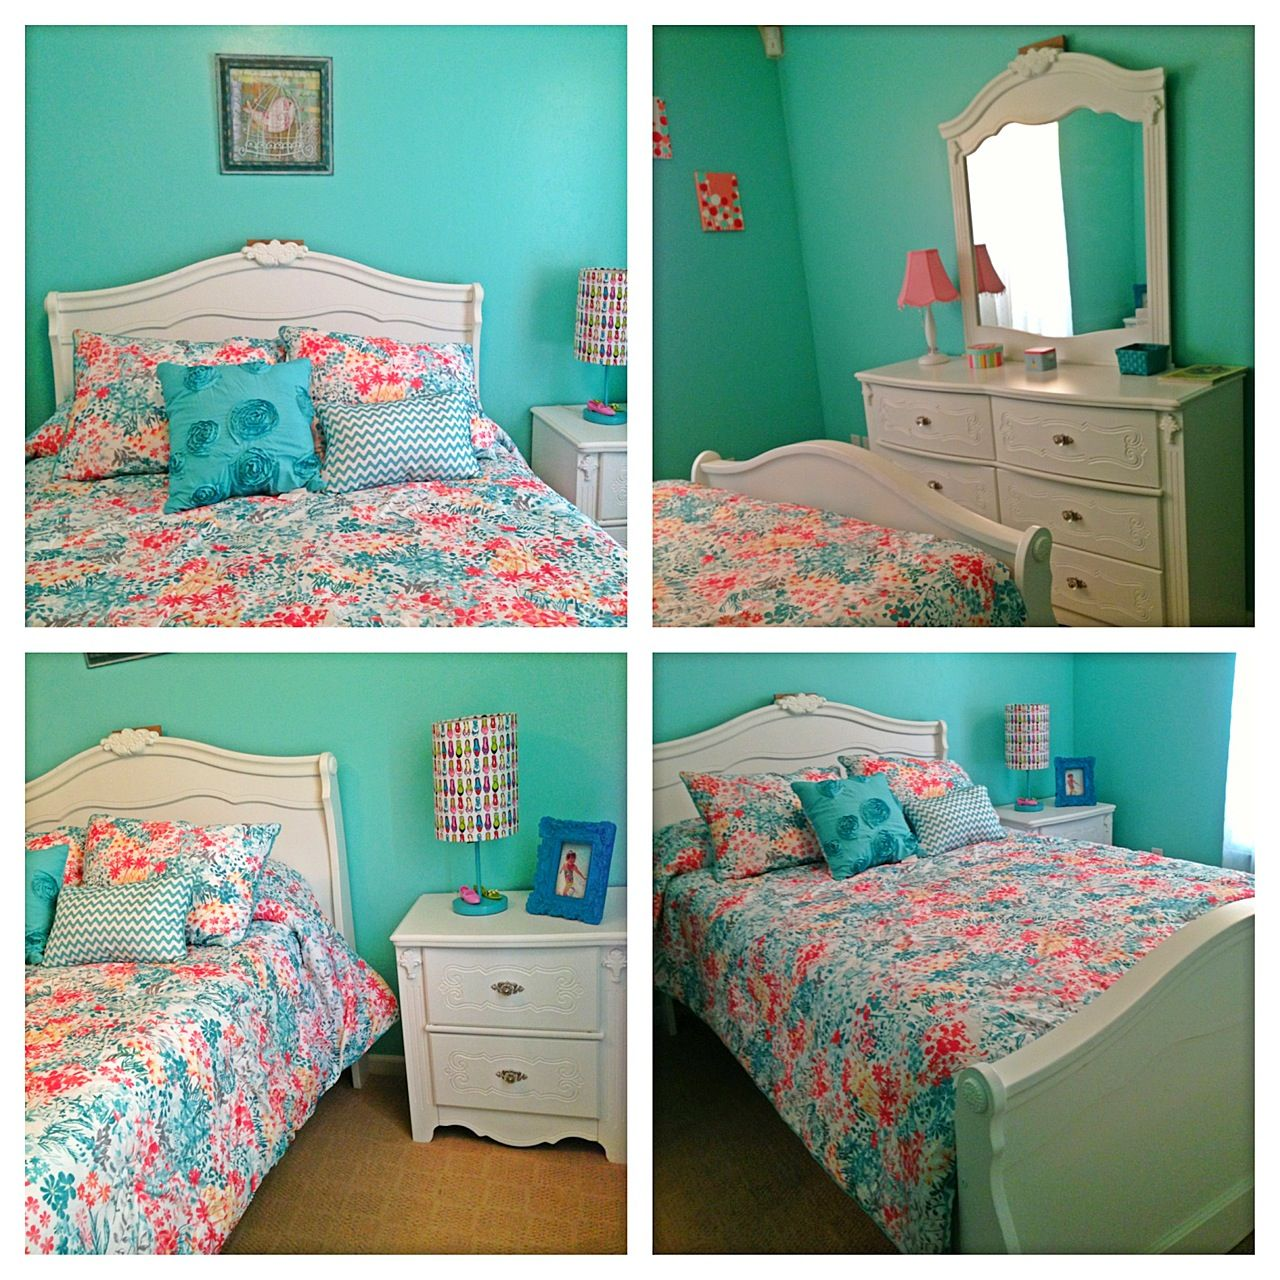 Turquoise and coral girl 39 s bedroom allies bedroom ideas for Bedroom ideas turquoise